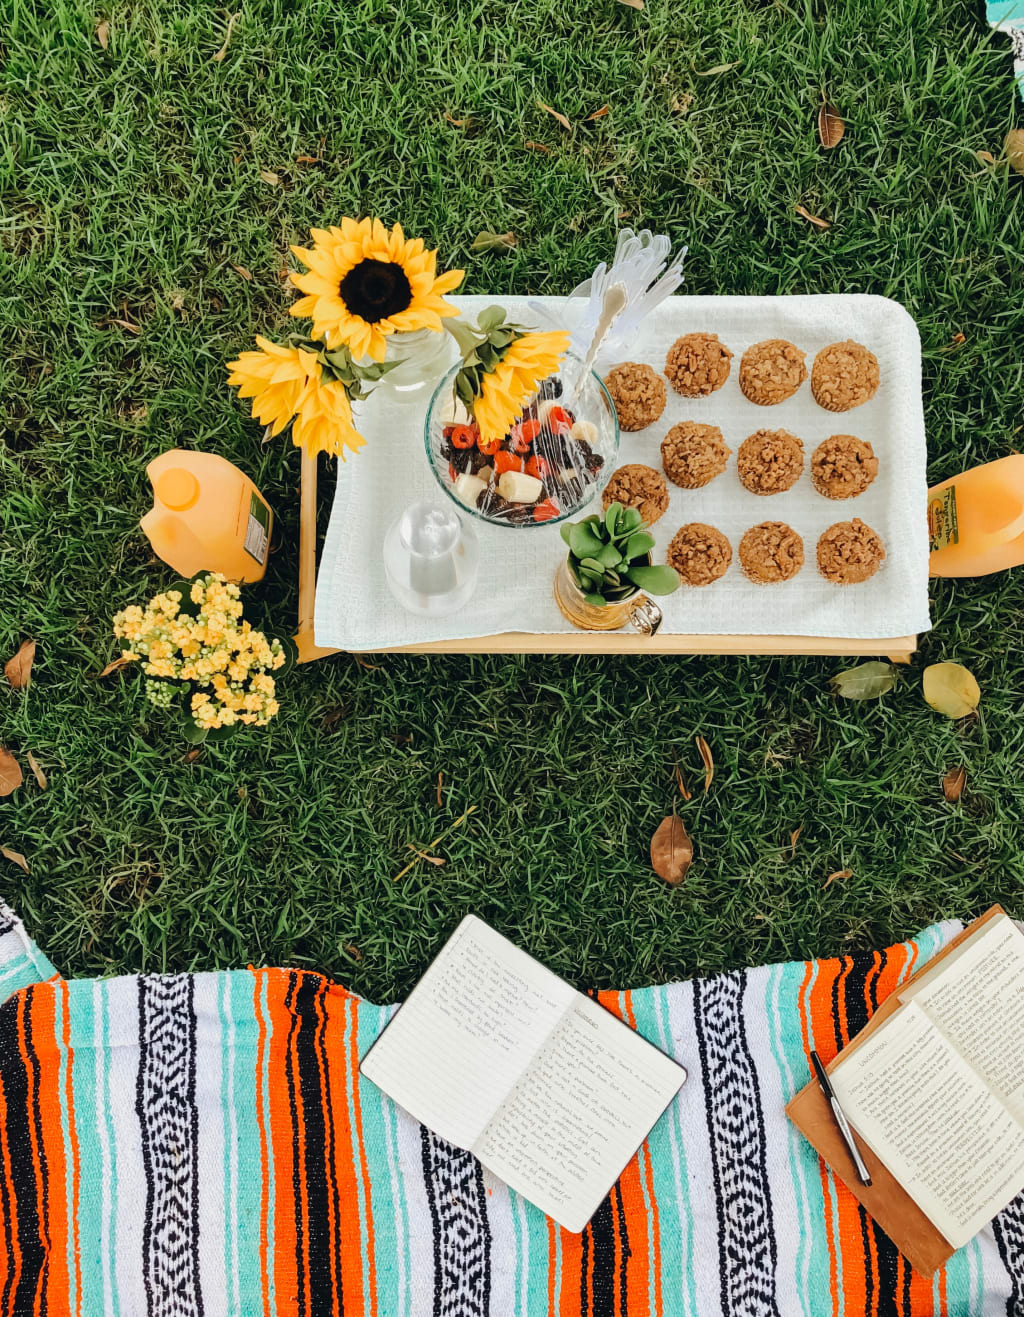 How to Plan a Picnic for Your Kids